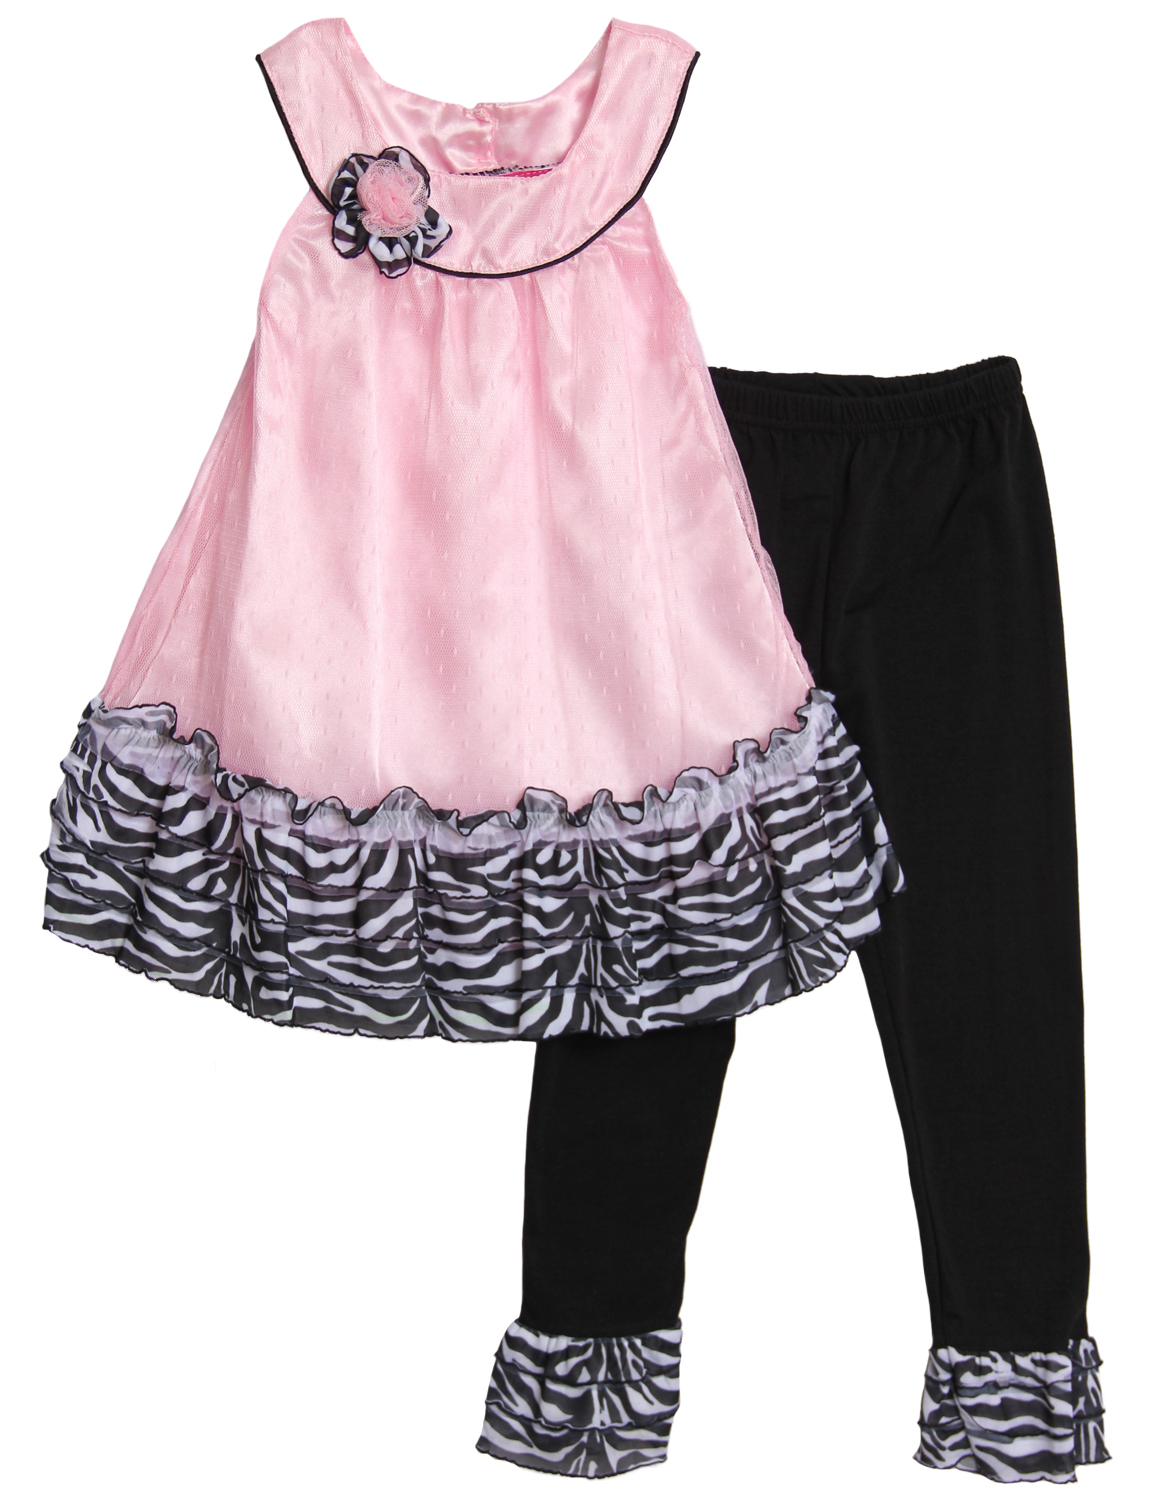 Angel Face Toddler Girls 2 Piece Pink Zebra Print Sleeveless Top Leggings Set at Sears.com